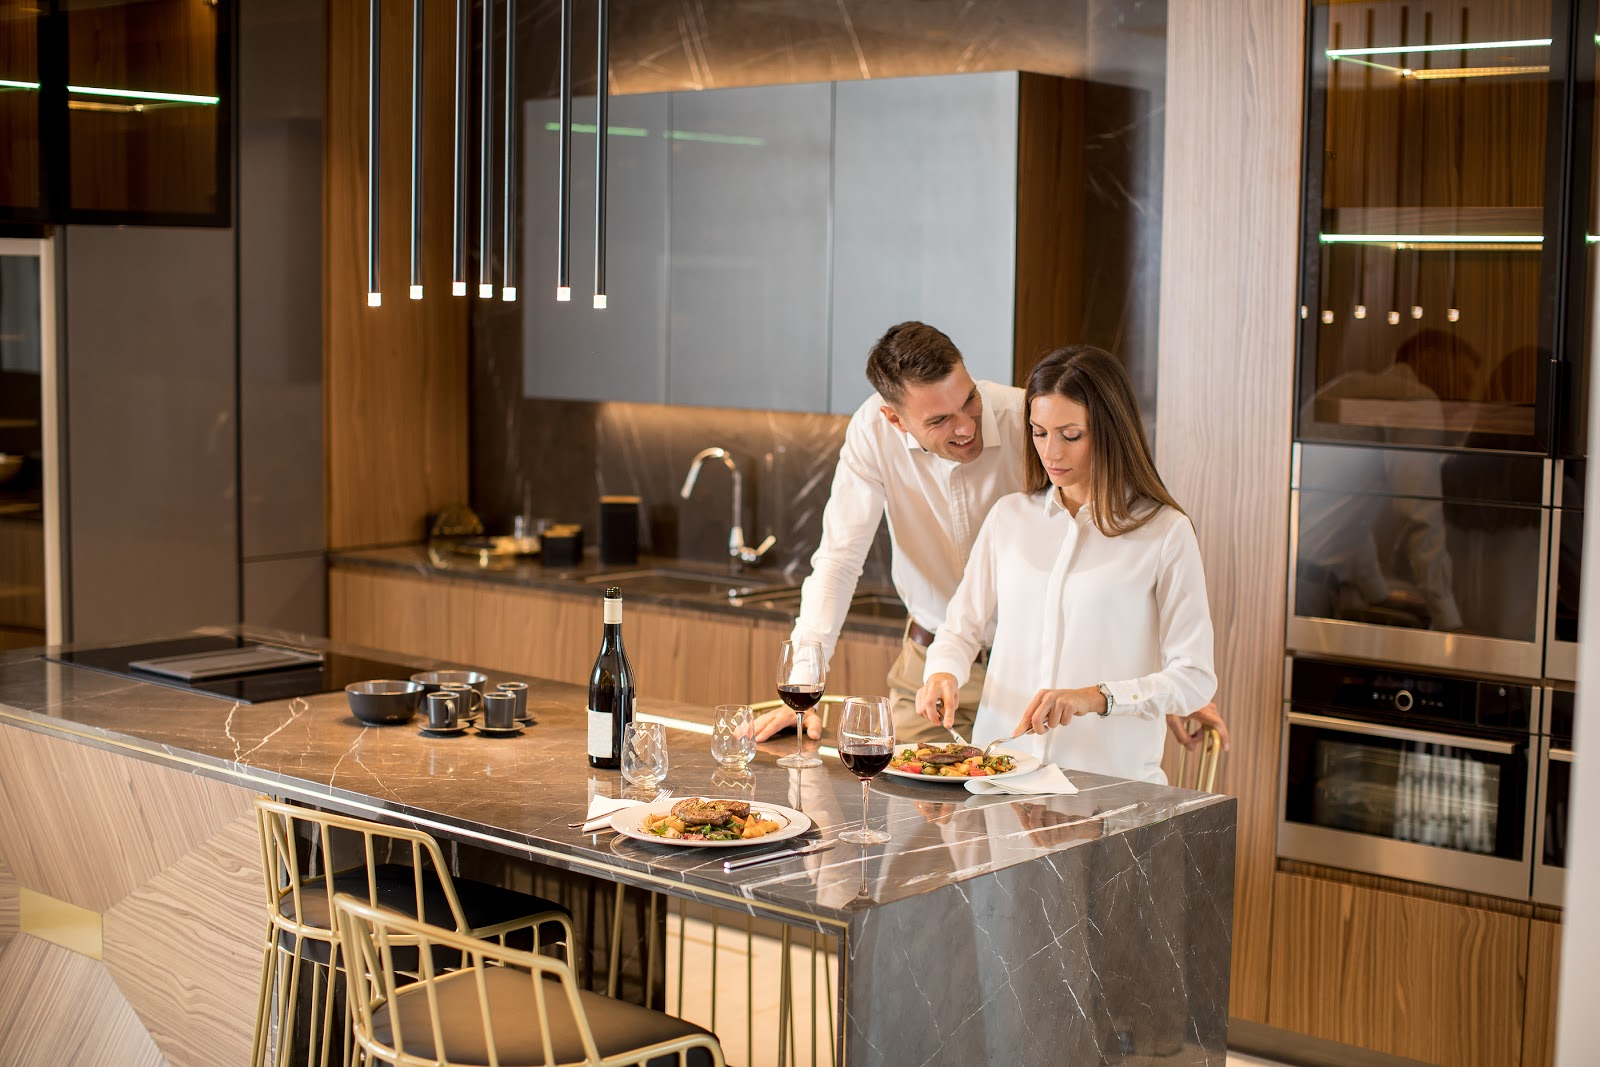 Sweet-Couple-Having-A-Romantic-dinner-wolfe-appliance-in-kitchen